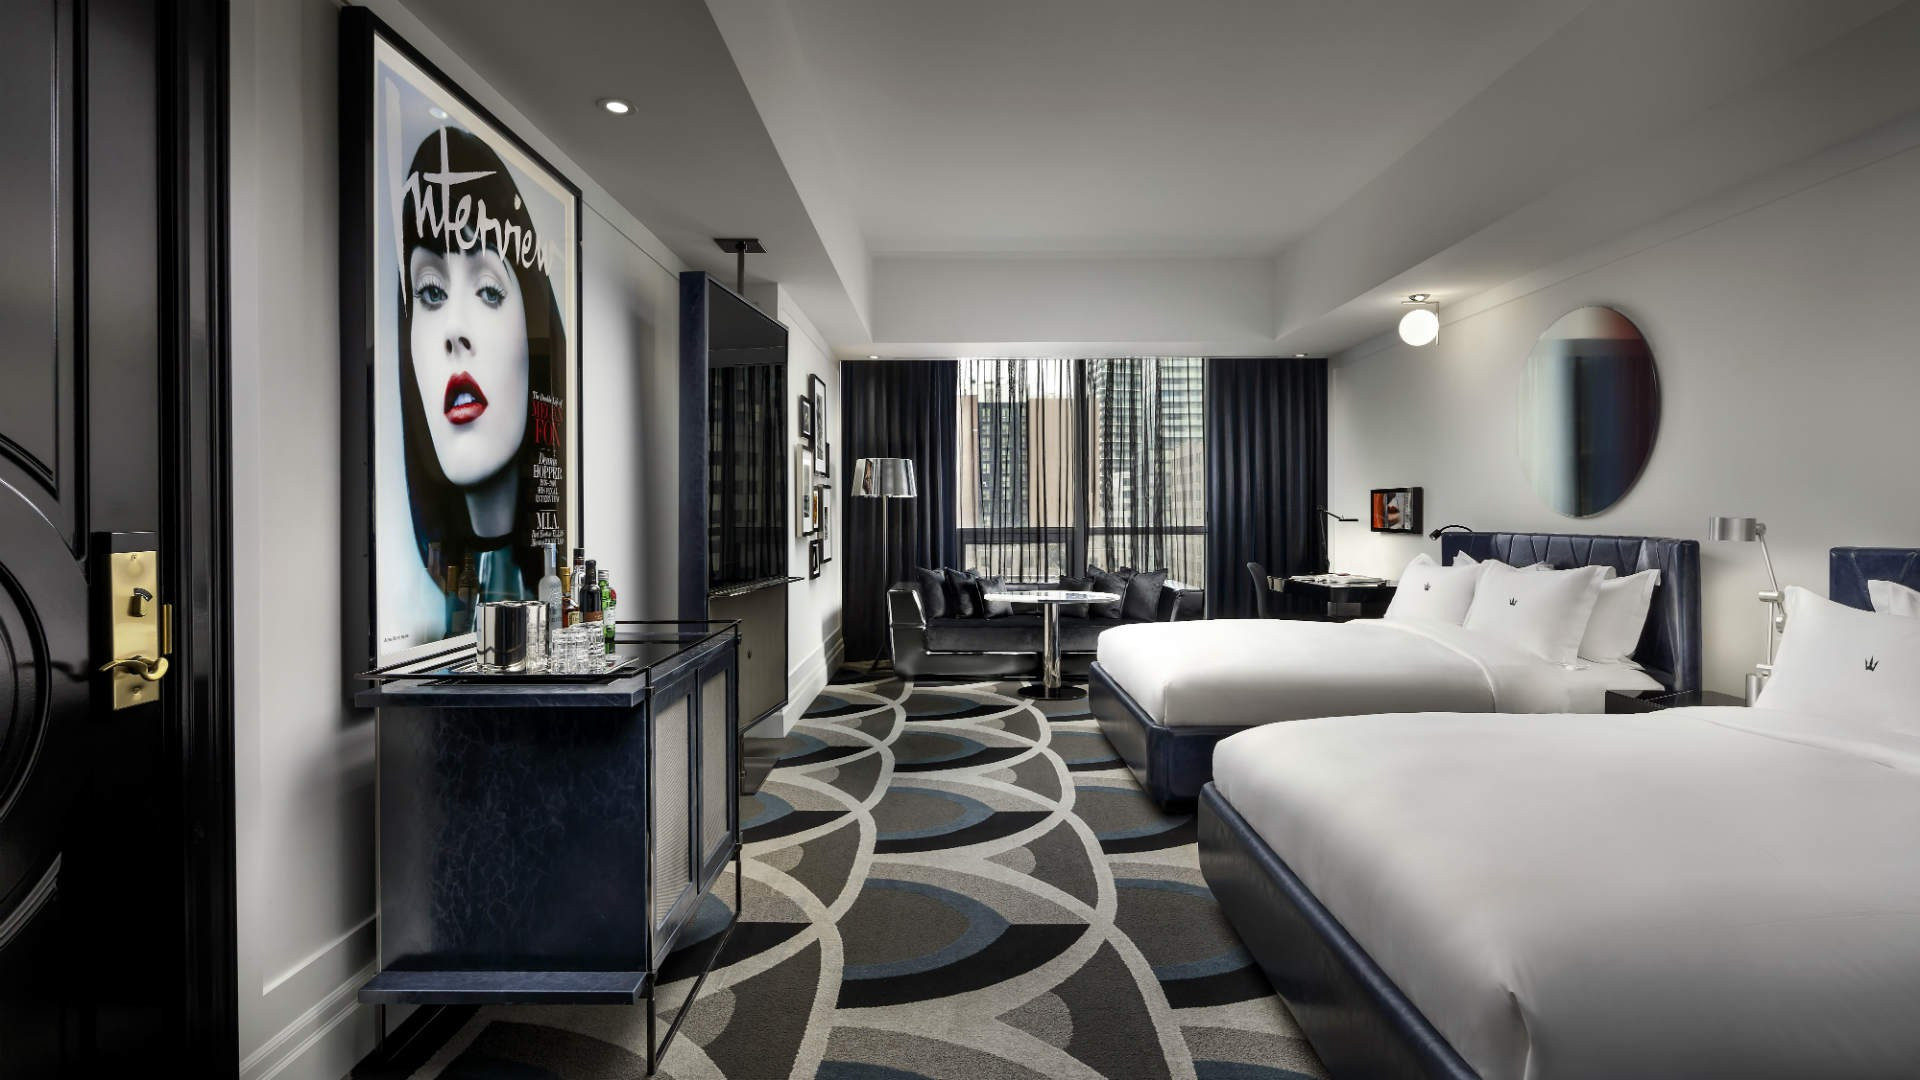 Best hotels Toronto staycation | The Bisha Hotel two bedroom suite